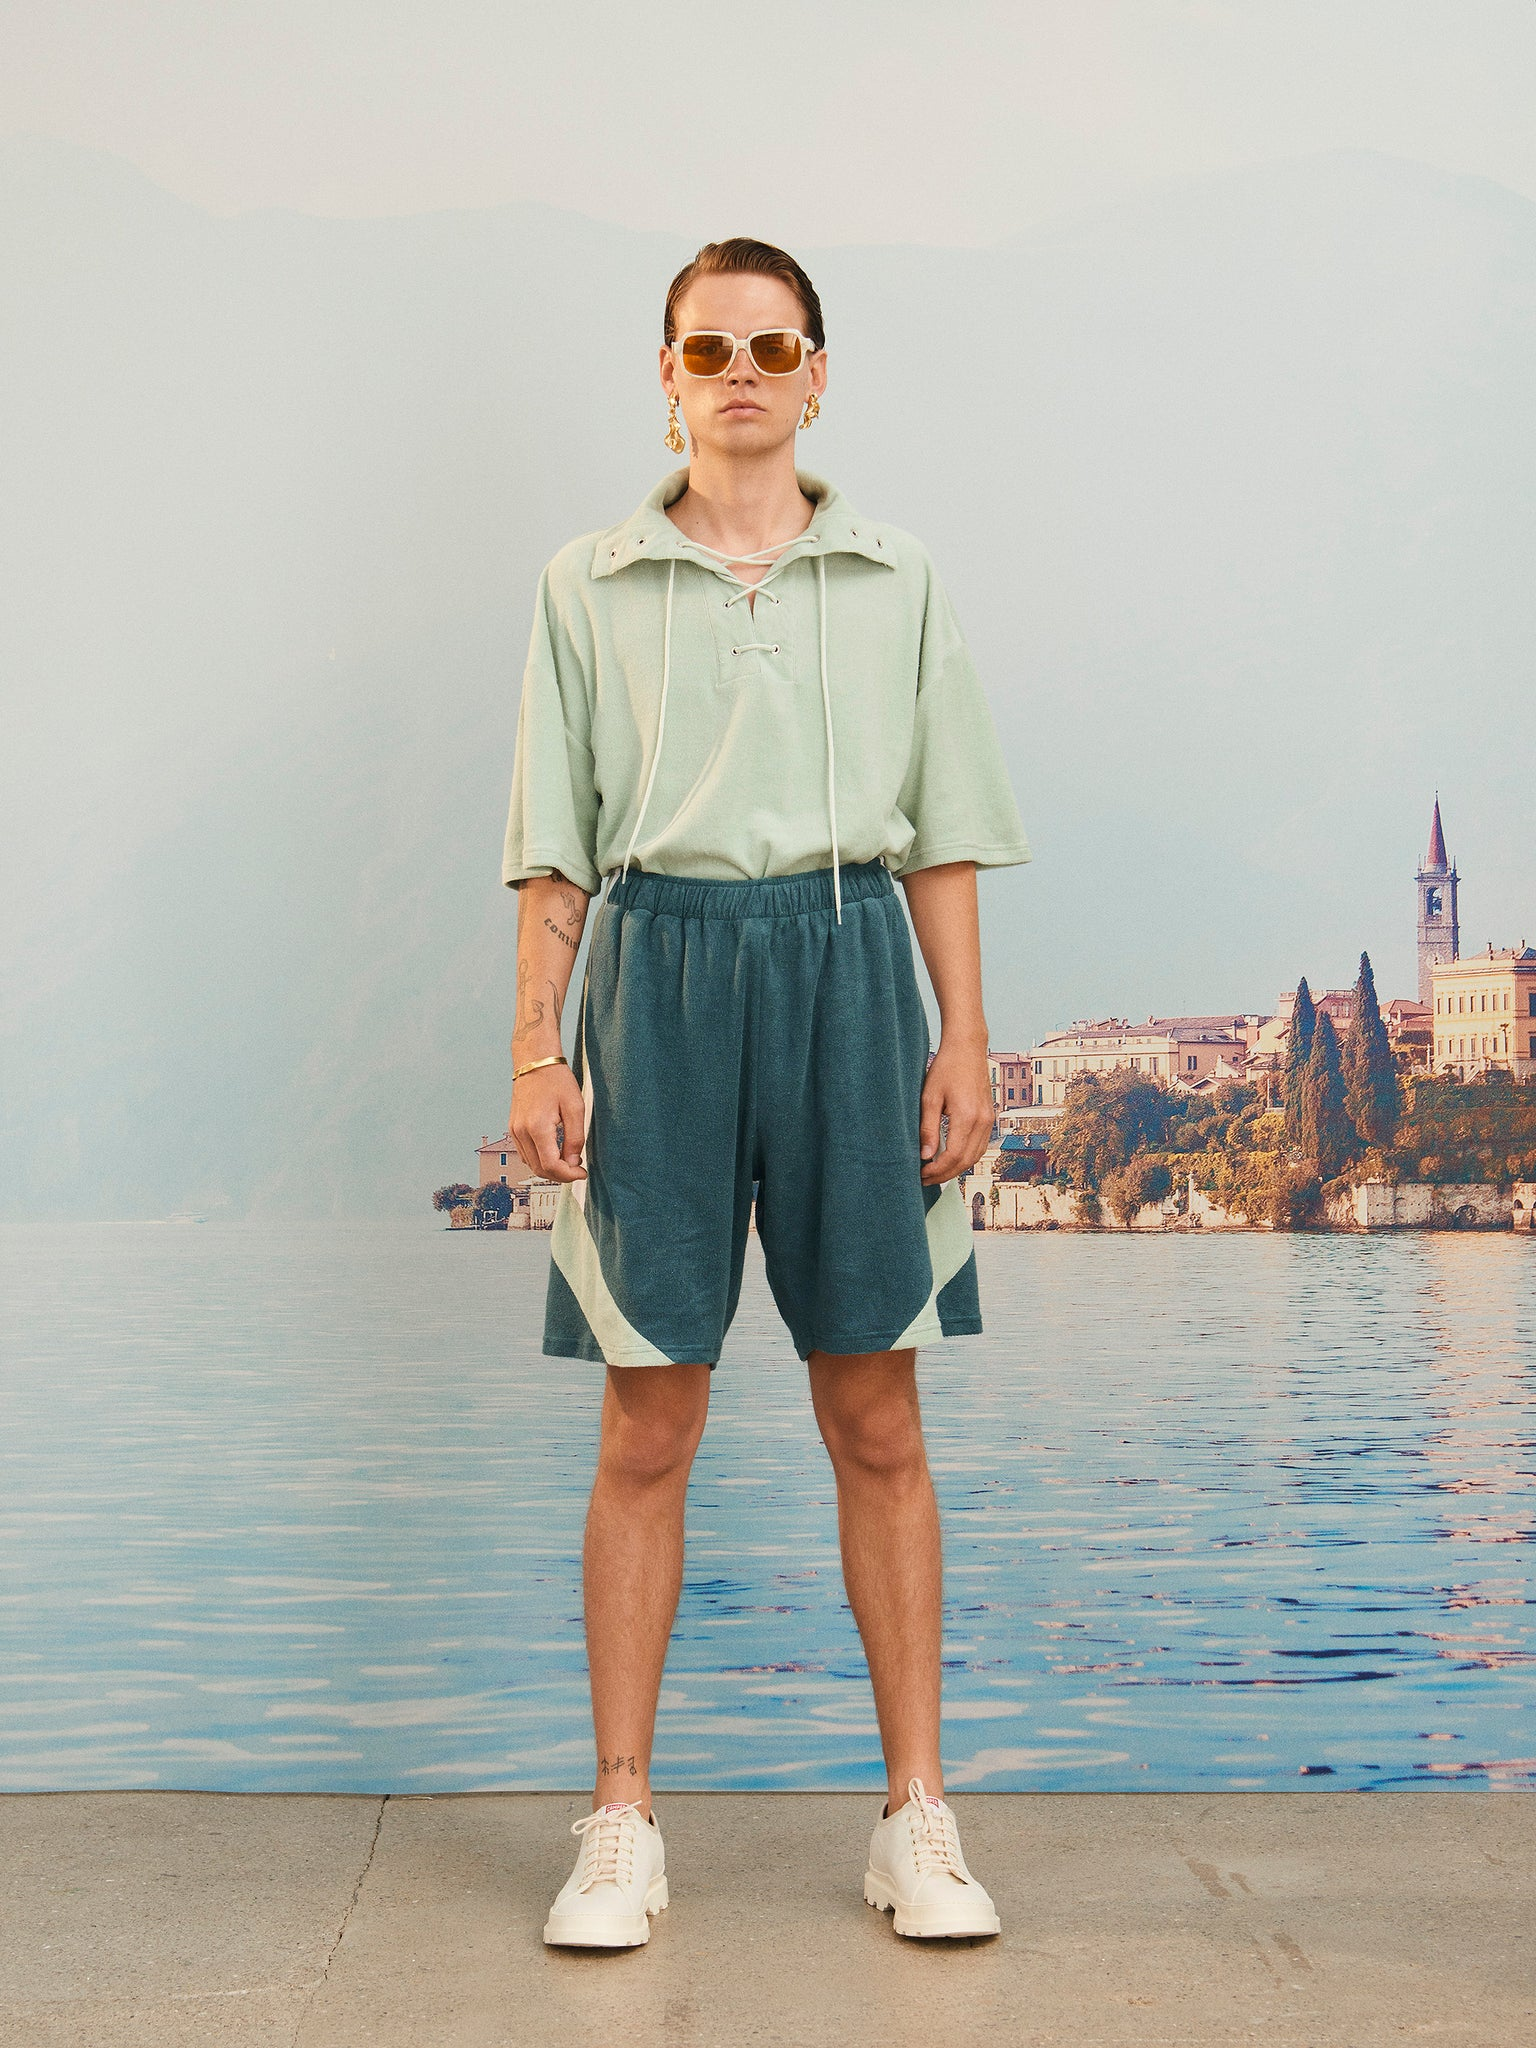 martin asbjorn ma terry cotton short terrycloth menswear paneled ss20 spring20 boring lookbook